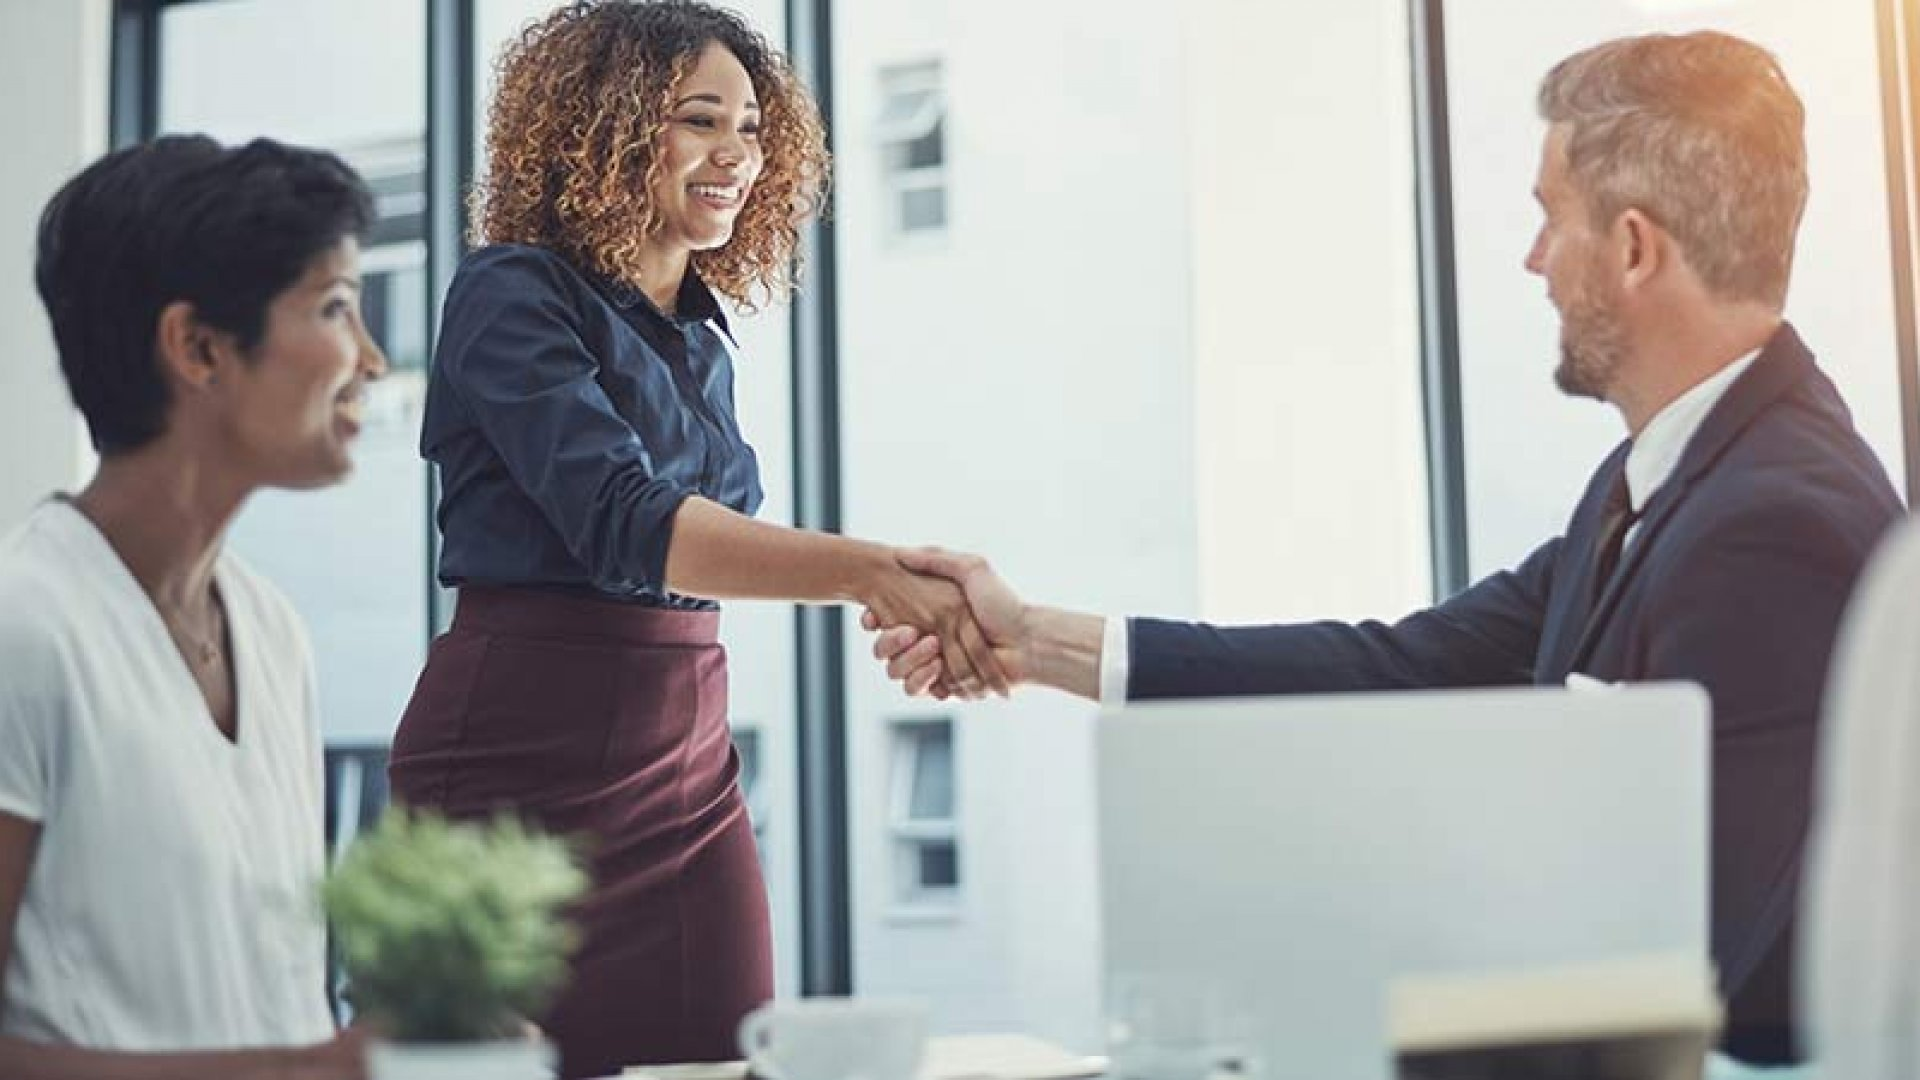 How to Find the Right Technology Partners for Your Startup